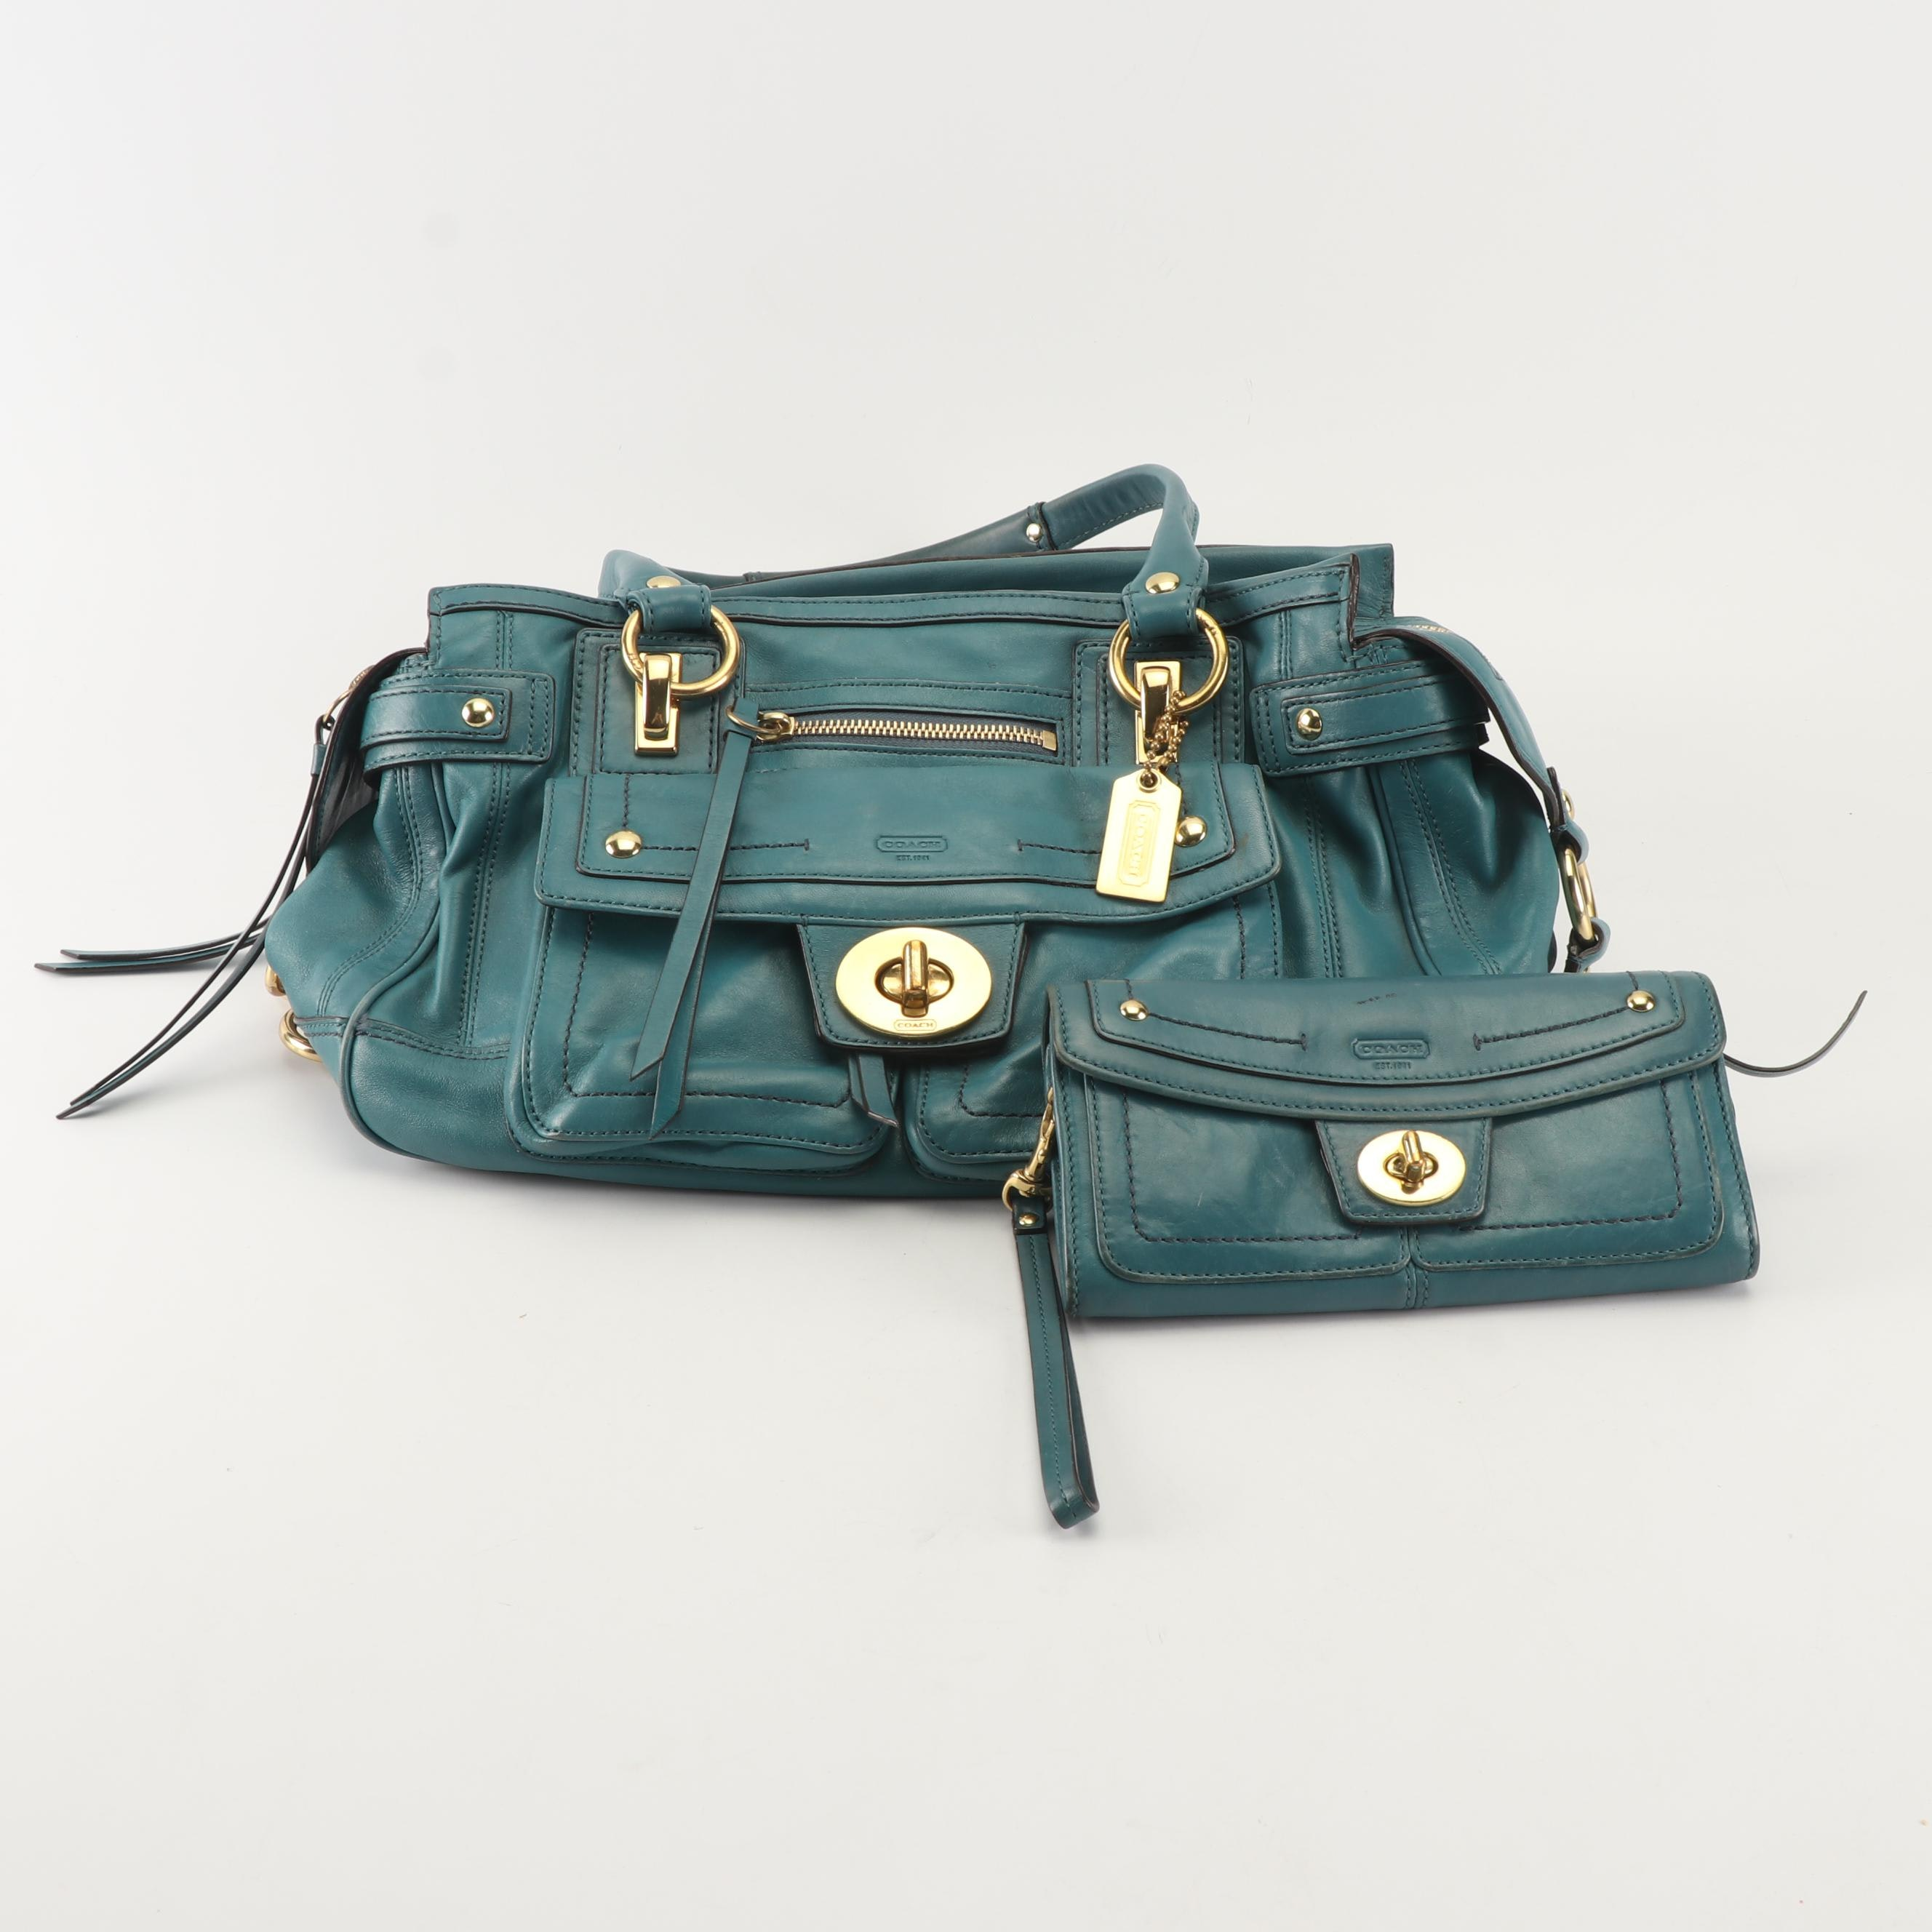 Coach Lindsay Hampton Teal Leather Satchel and Matching Wristlet Wallet